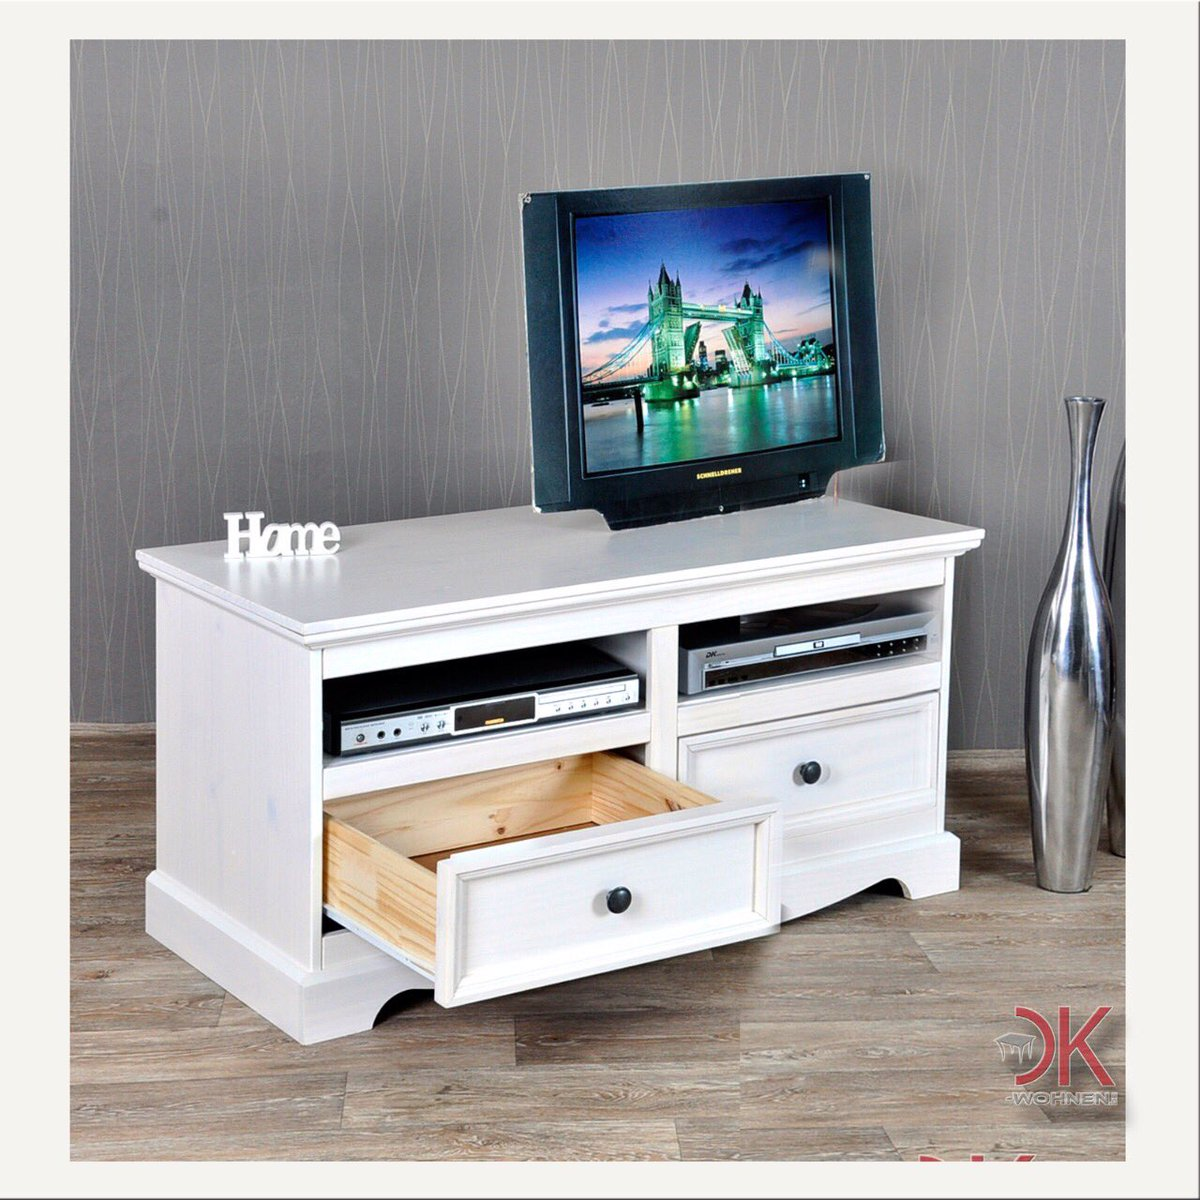 Tv Schrank Upcycling Tvschrank Hashtag On Twitter